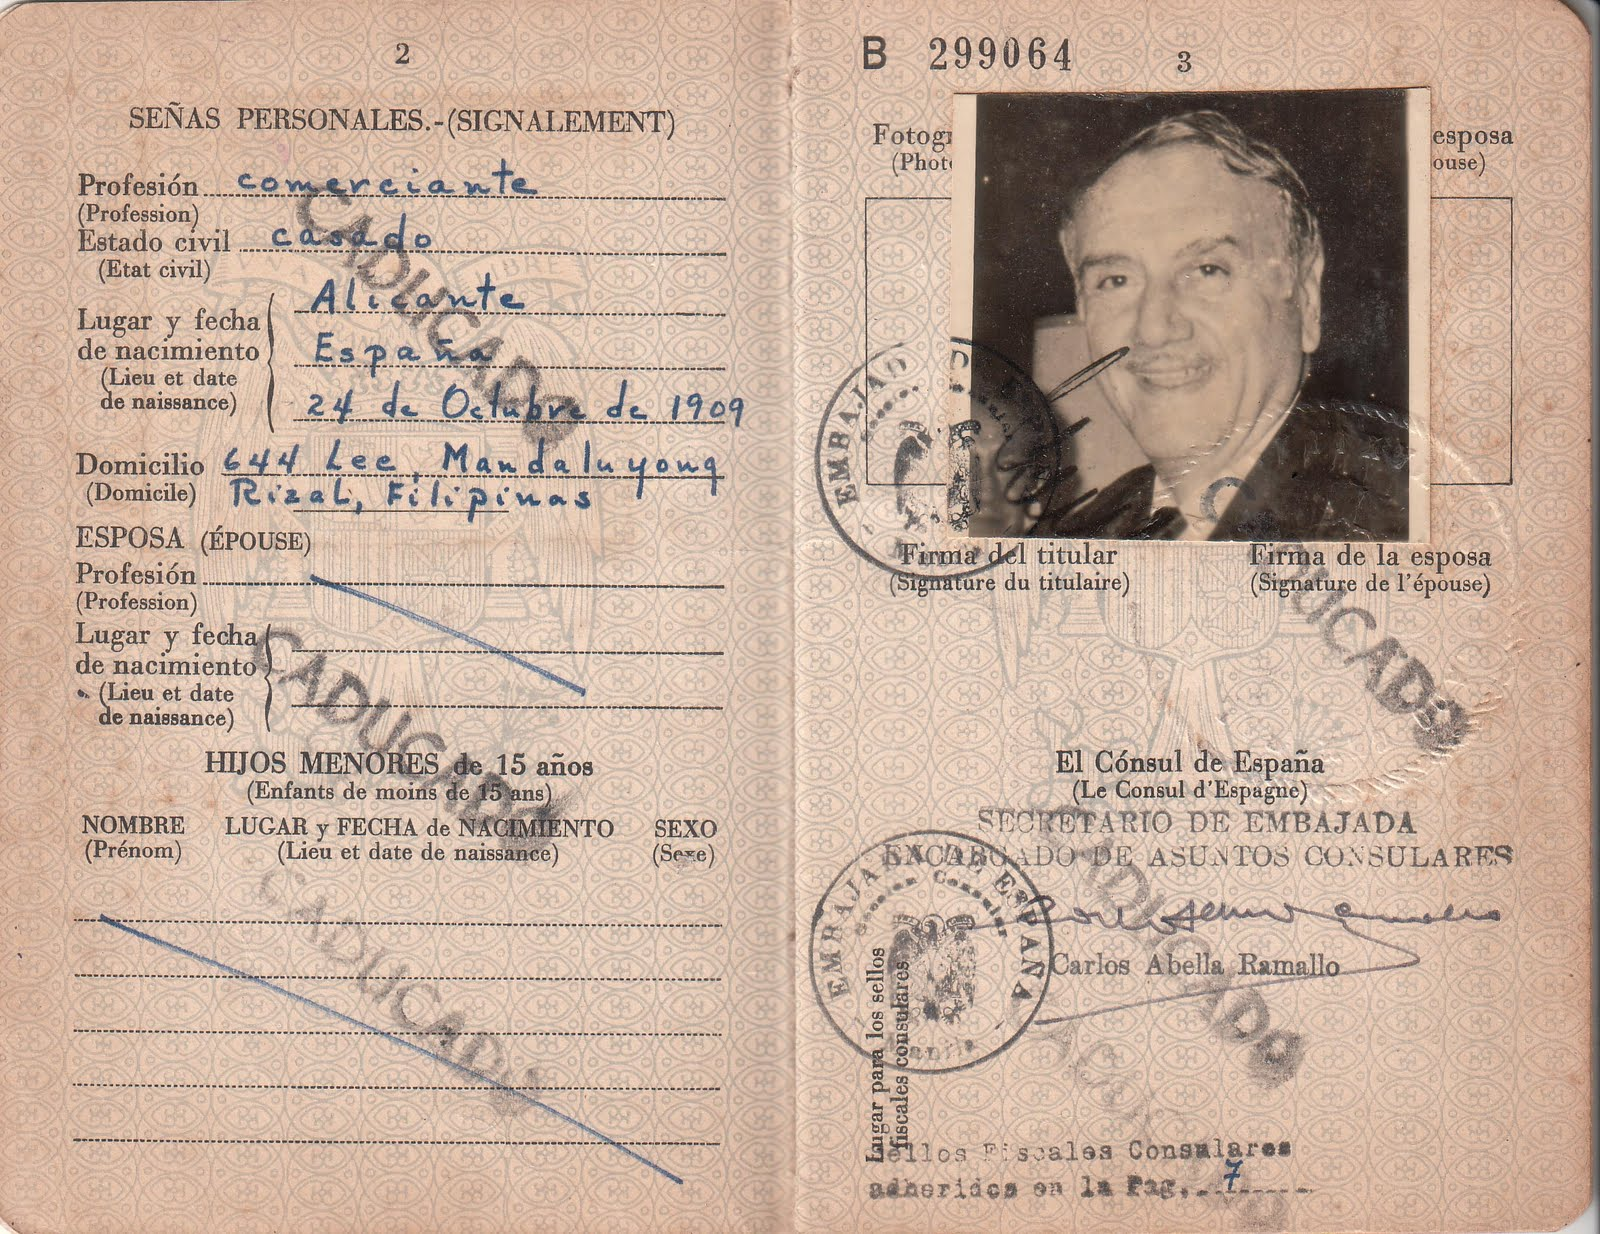 Passport Stampaholic: A Spanish Resident in the